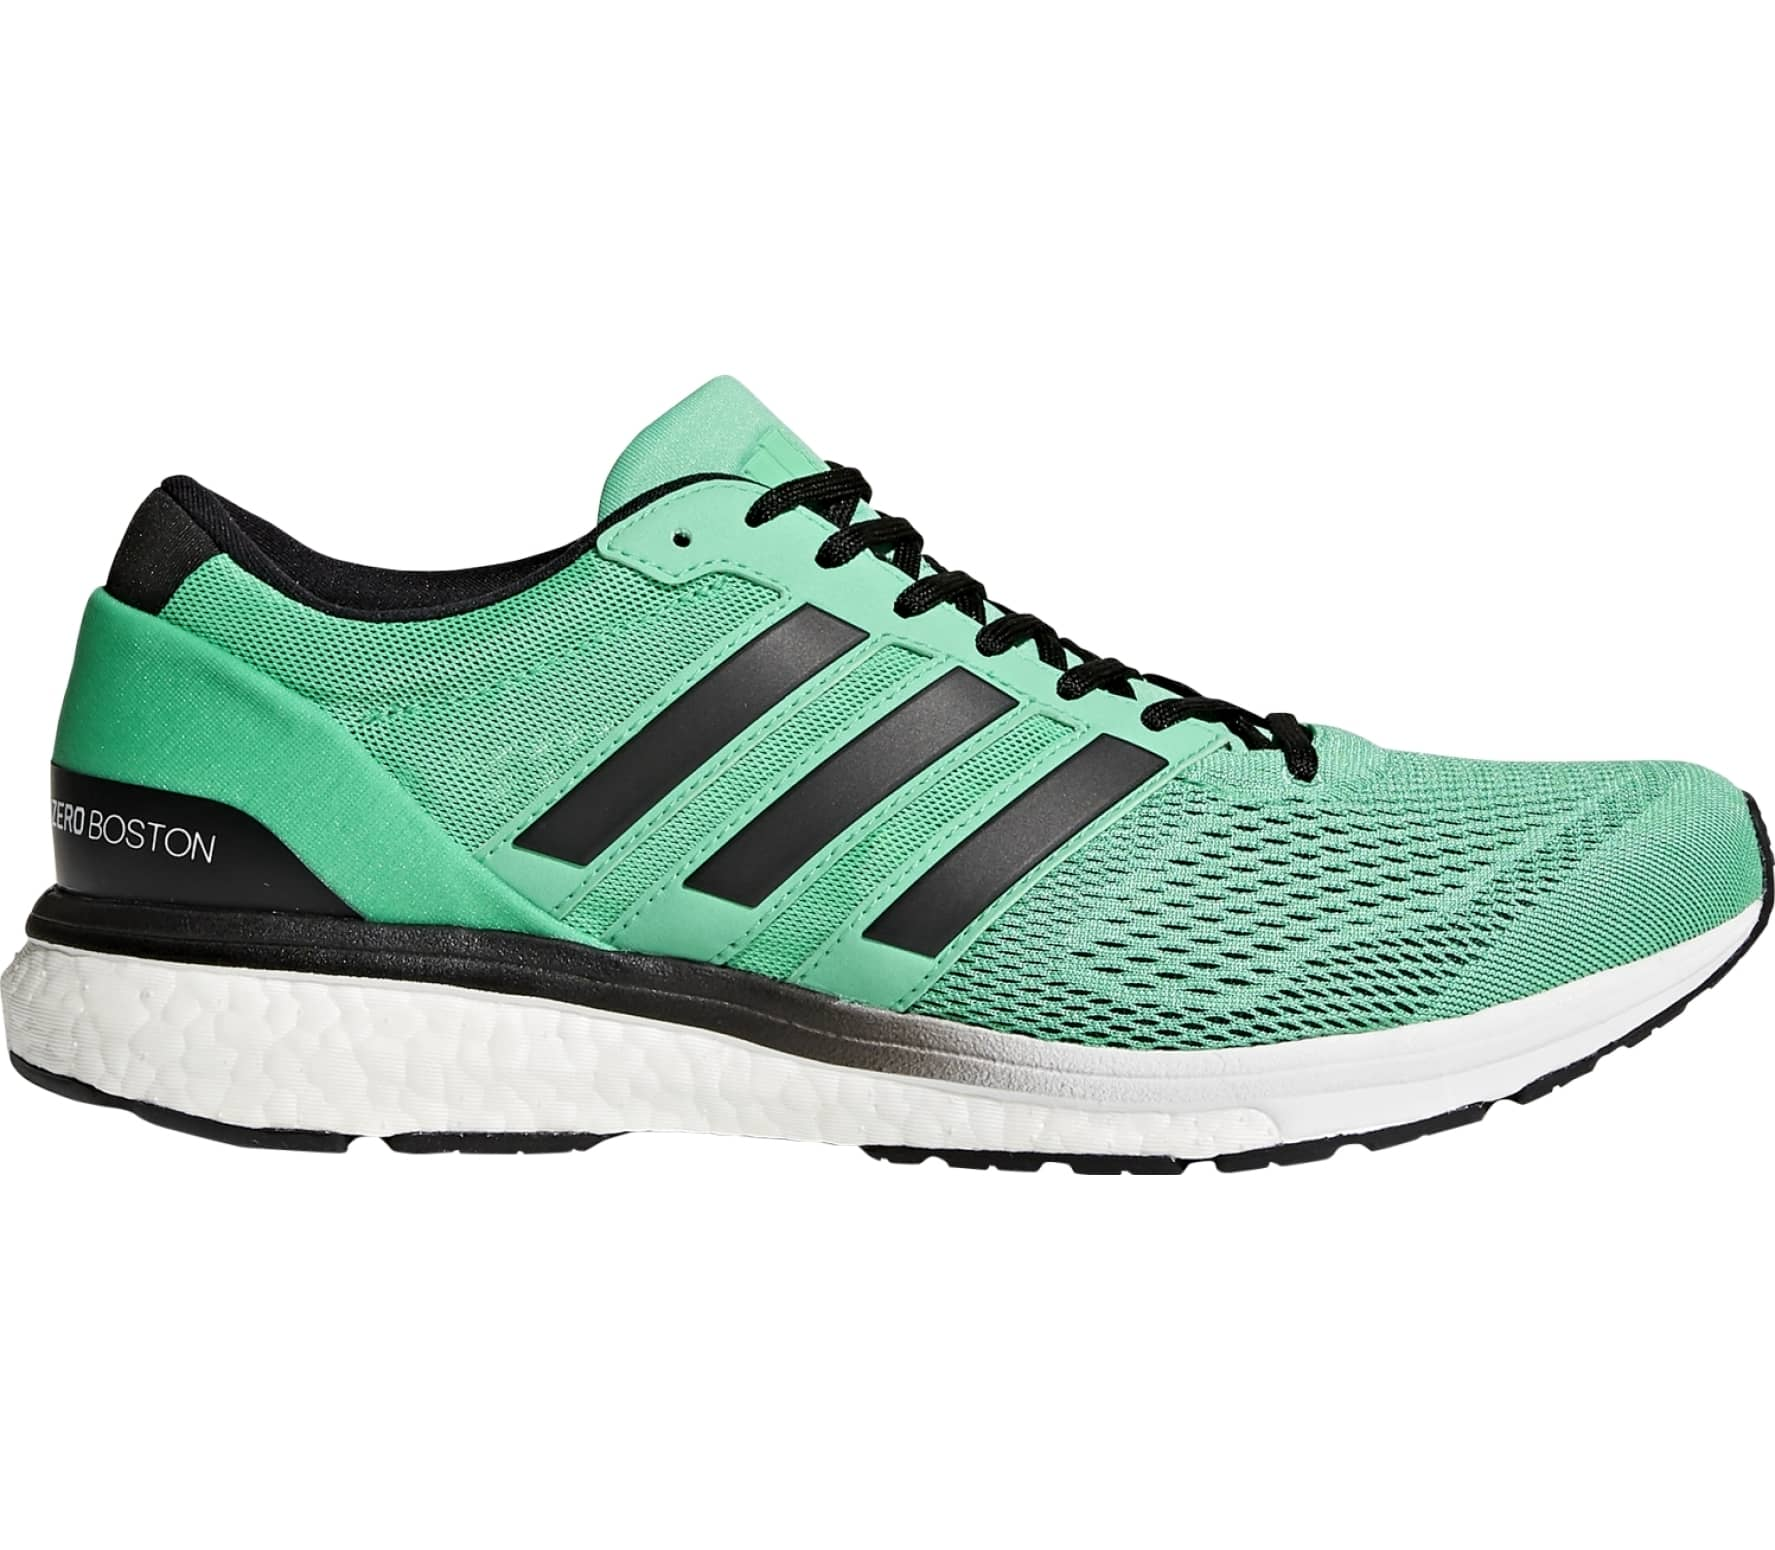 lowest price d5486 b961a Adidas - Adizero Boston 6 Hombre Zapatos para correr (verde negro)